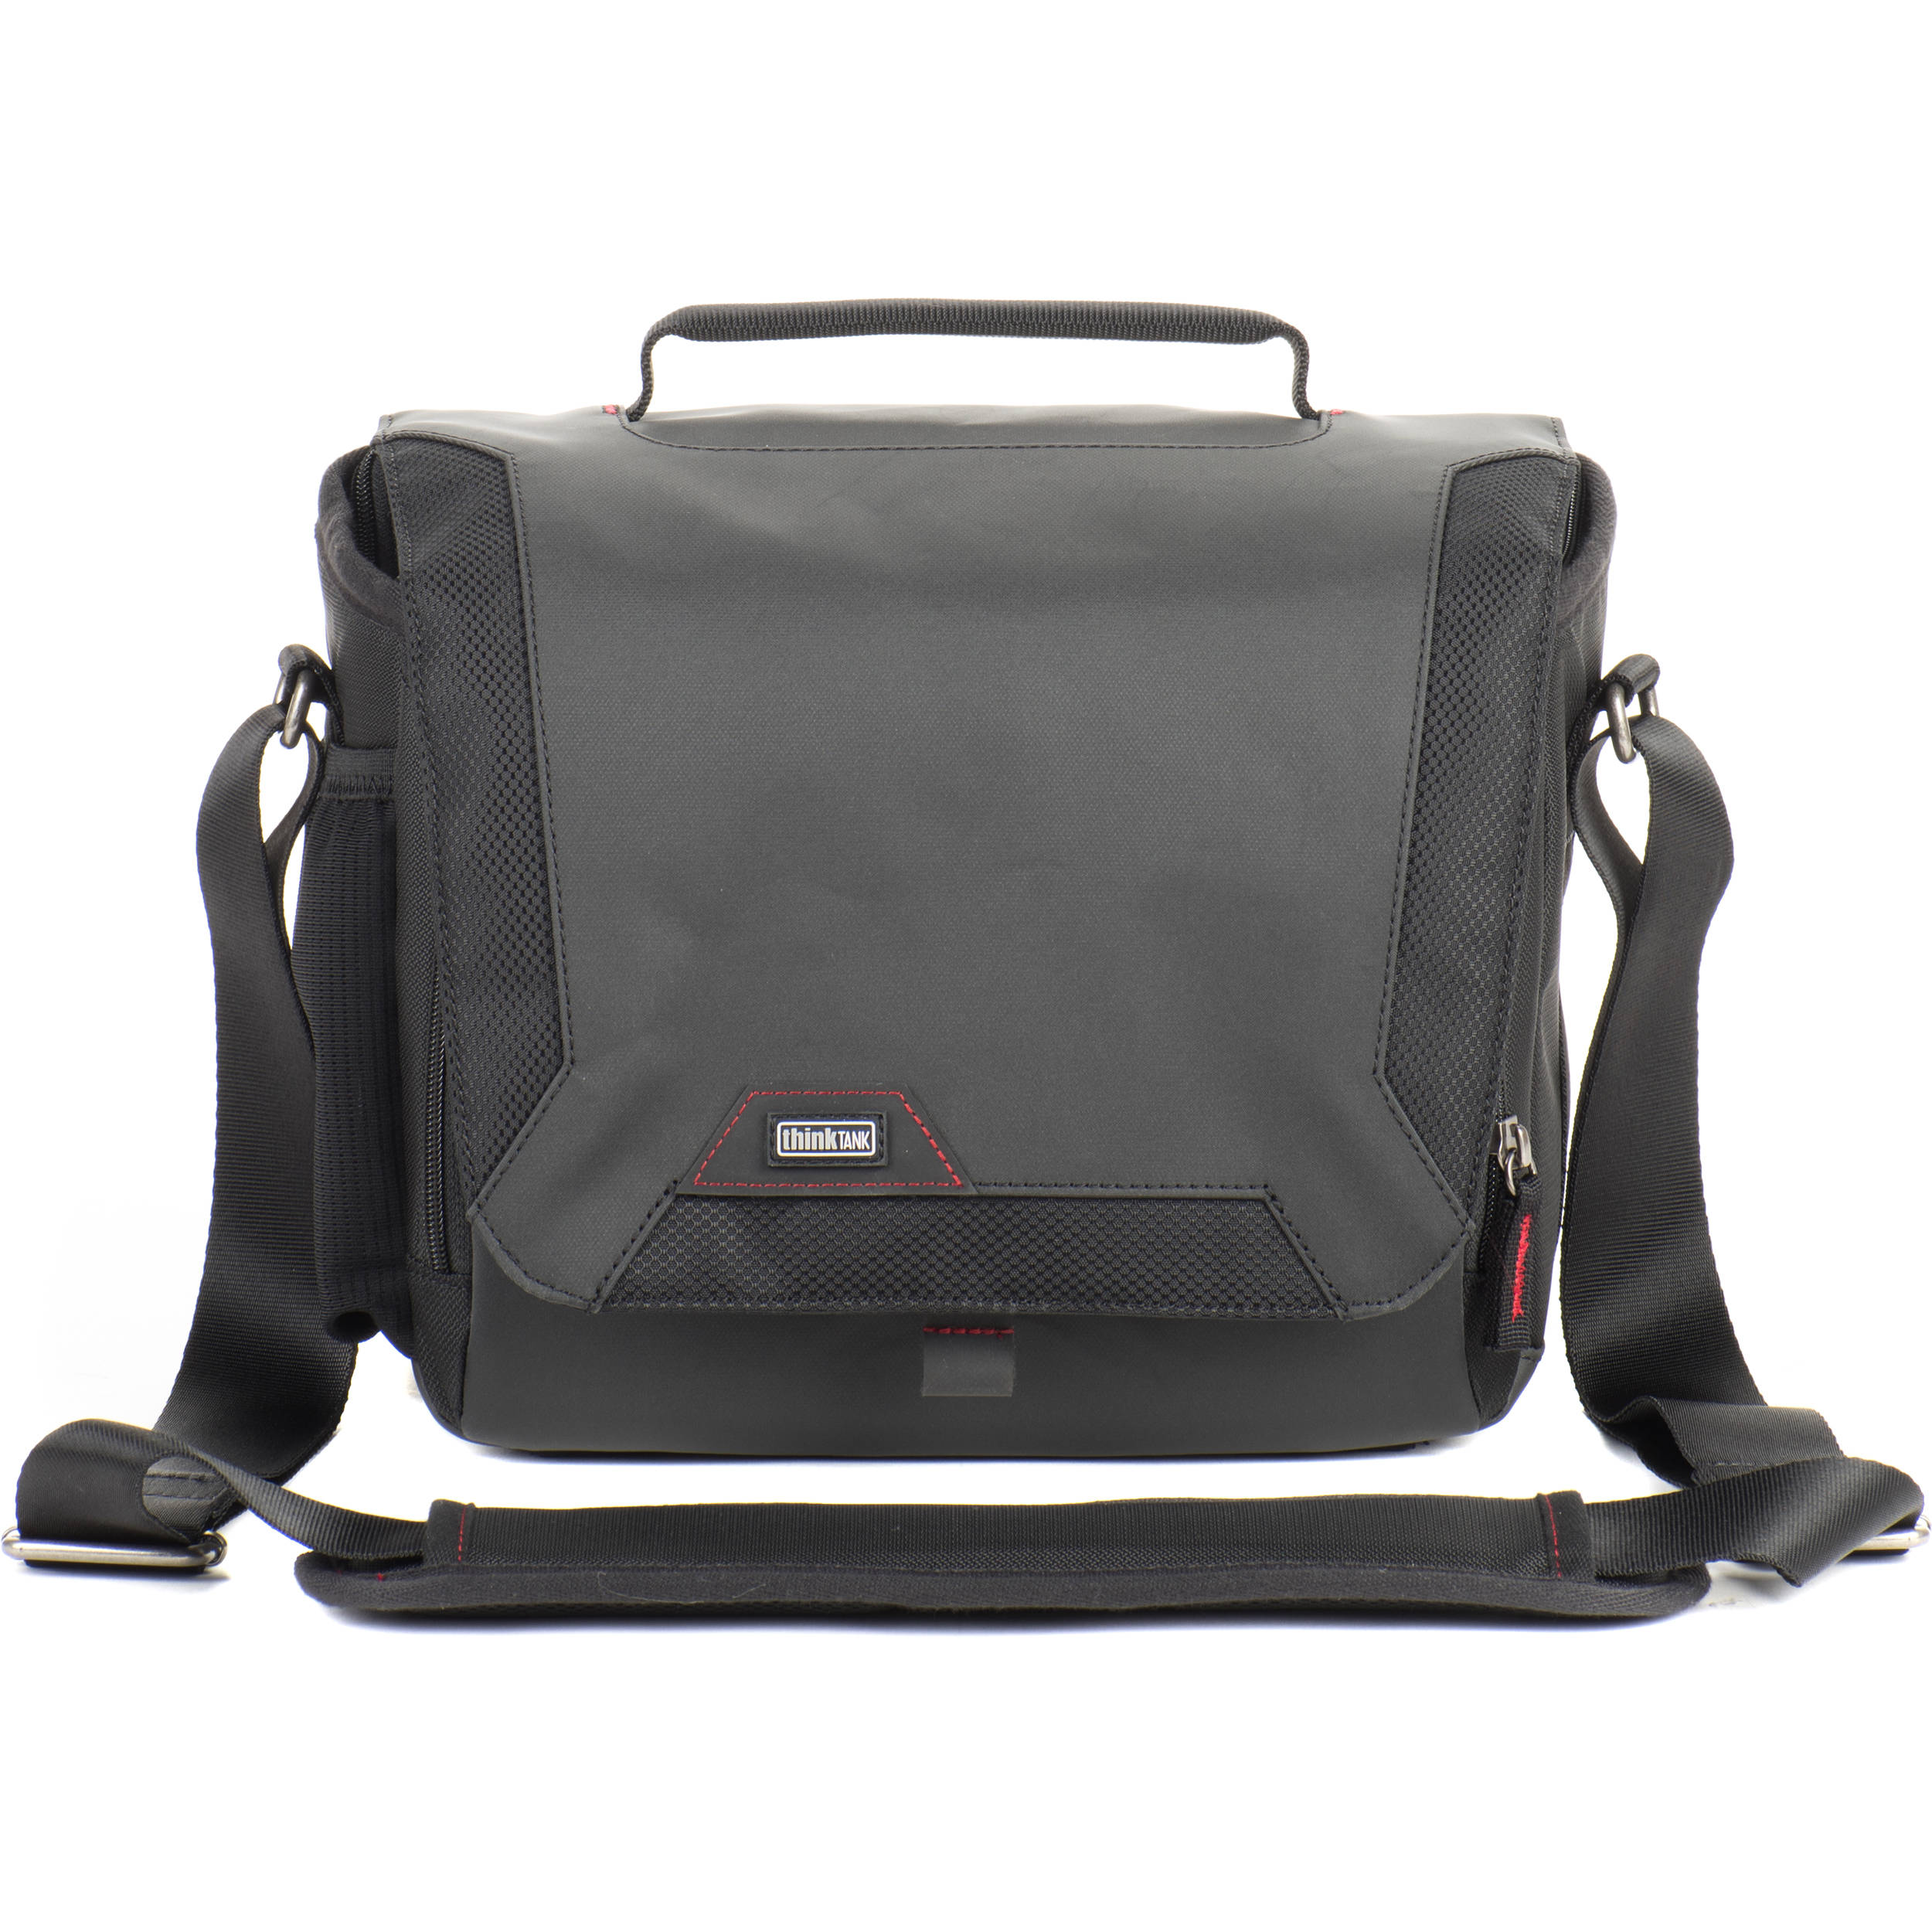 cc772357e5 Think Tank Photo Spectral 8 Camera Shoulder Bag (Black) 710692